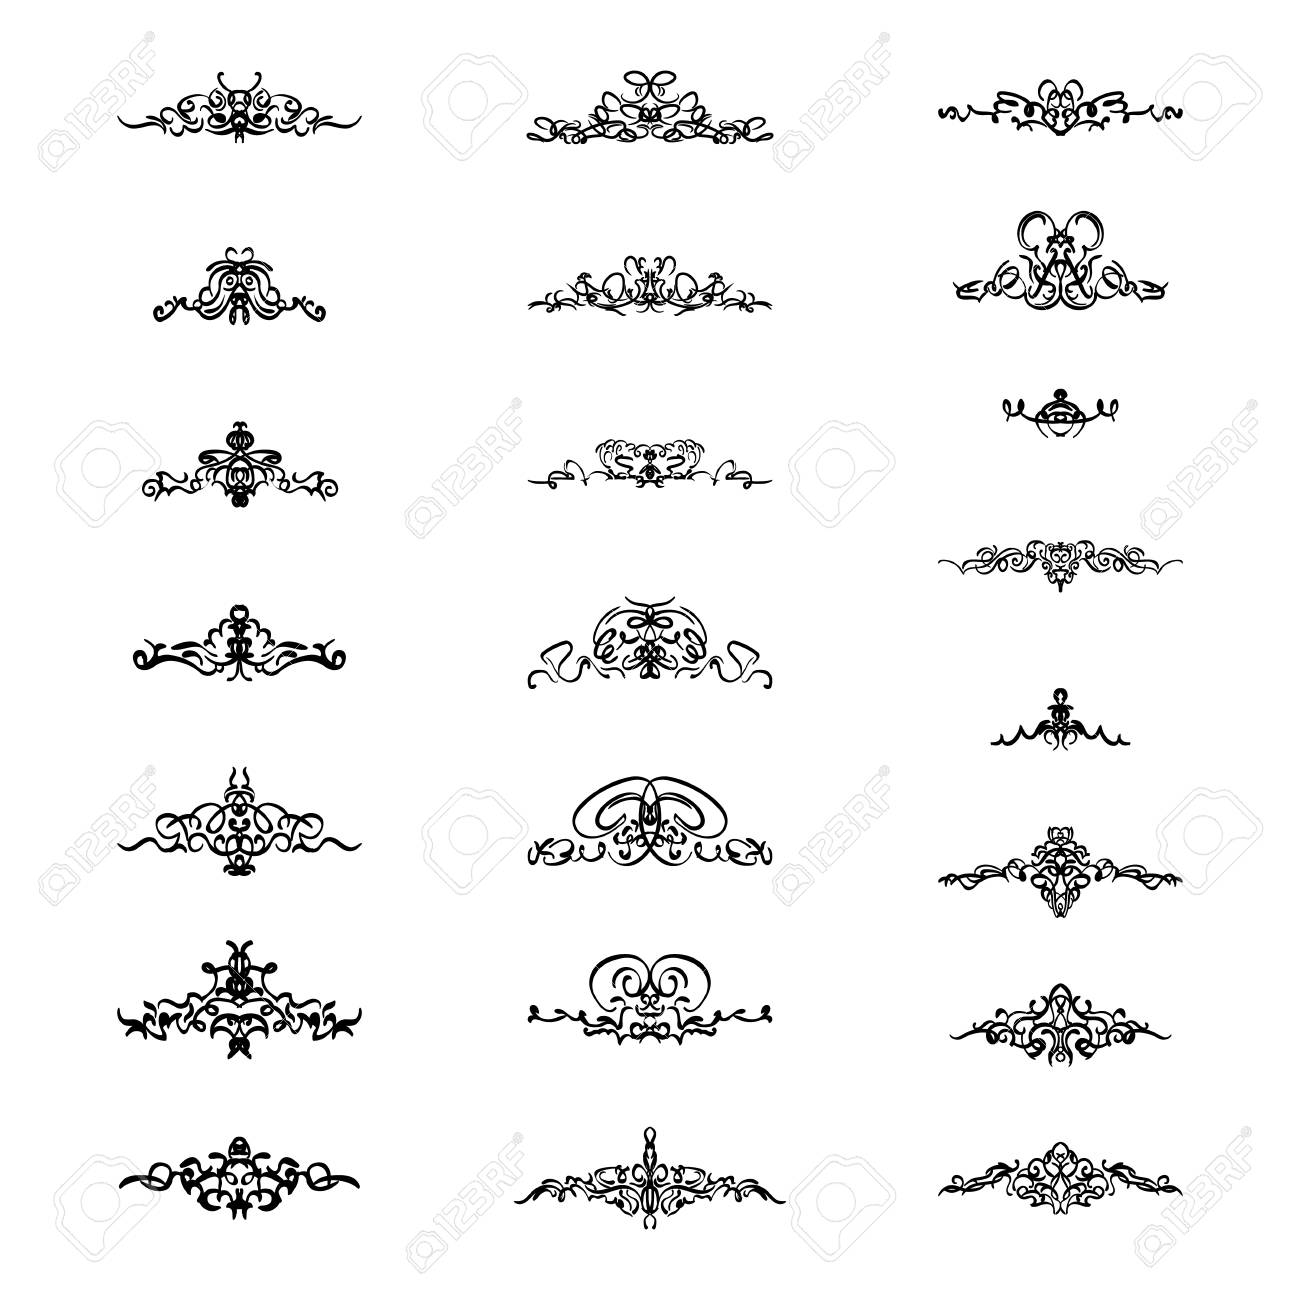 Vintage lines clipart clipart freeuse stock Vintage Lines Cliparts - Making-The-Web.com clipart freeuse stock